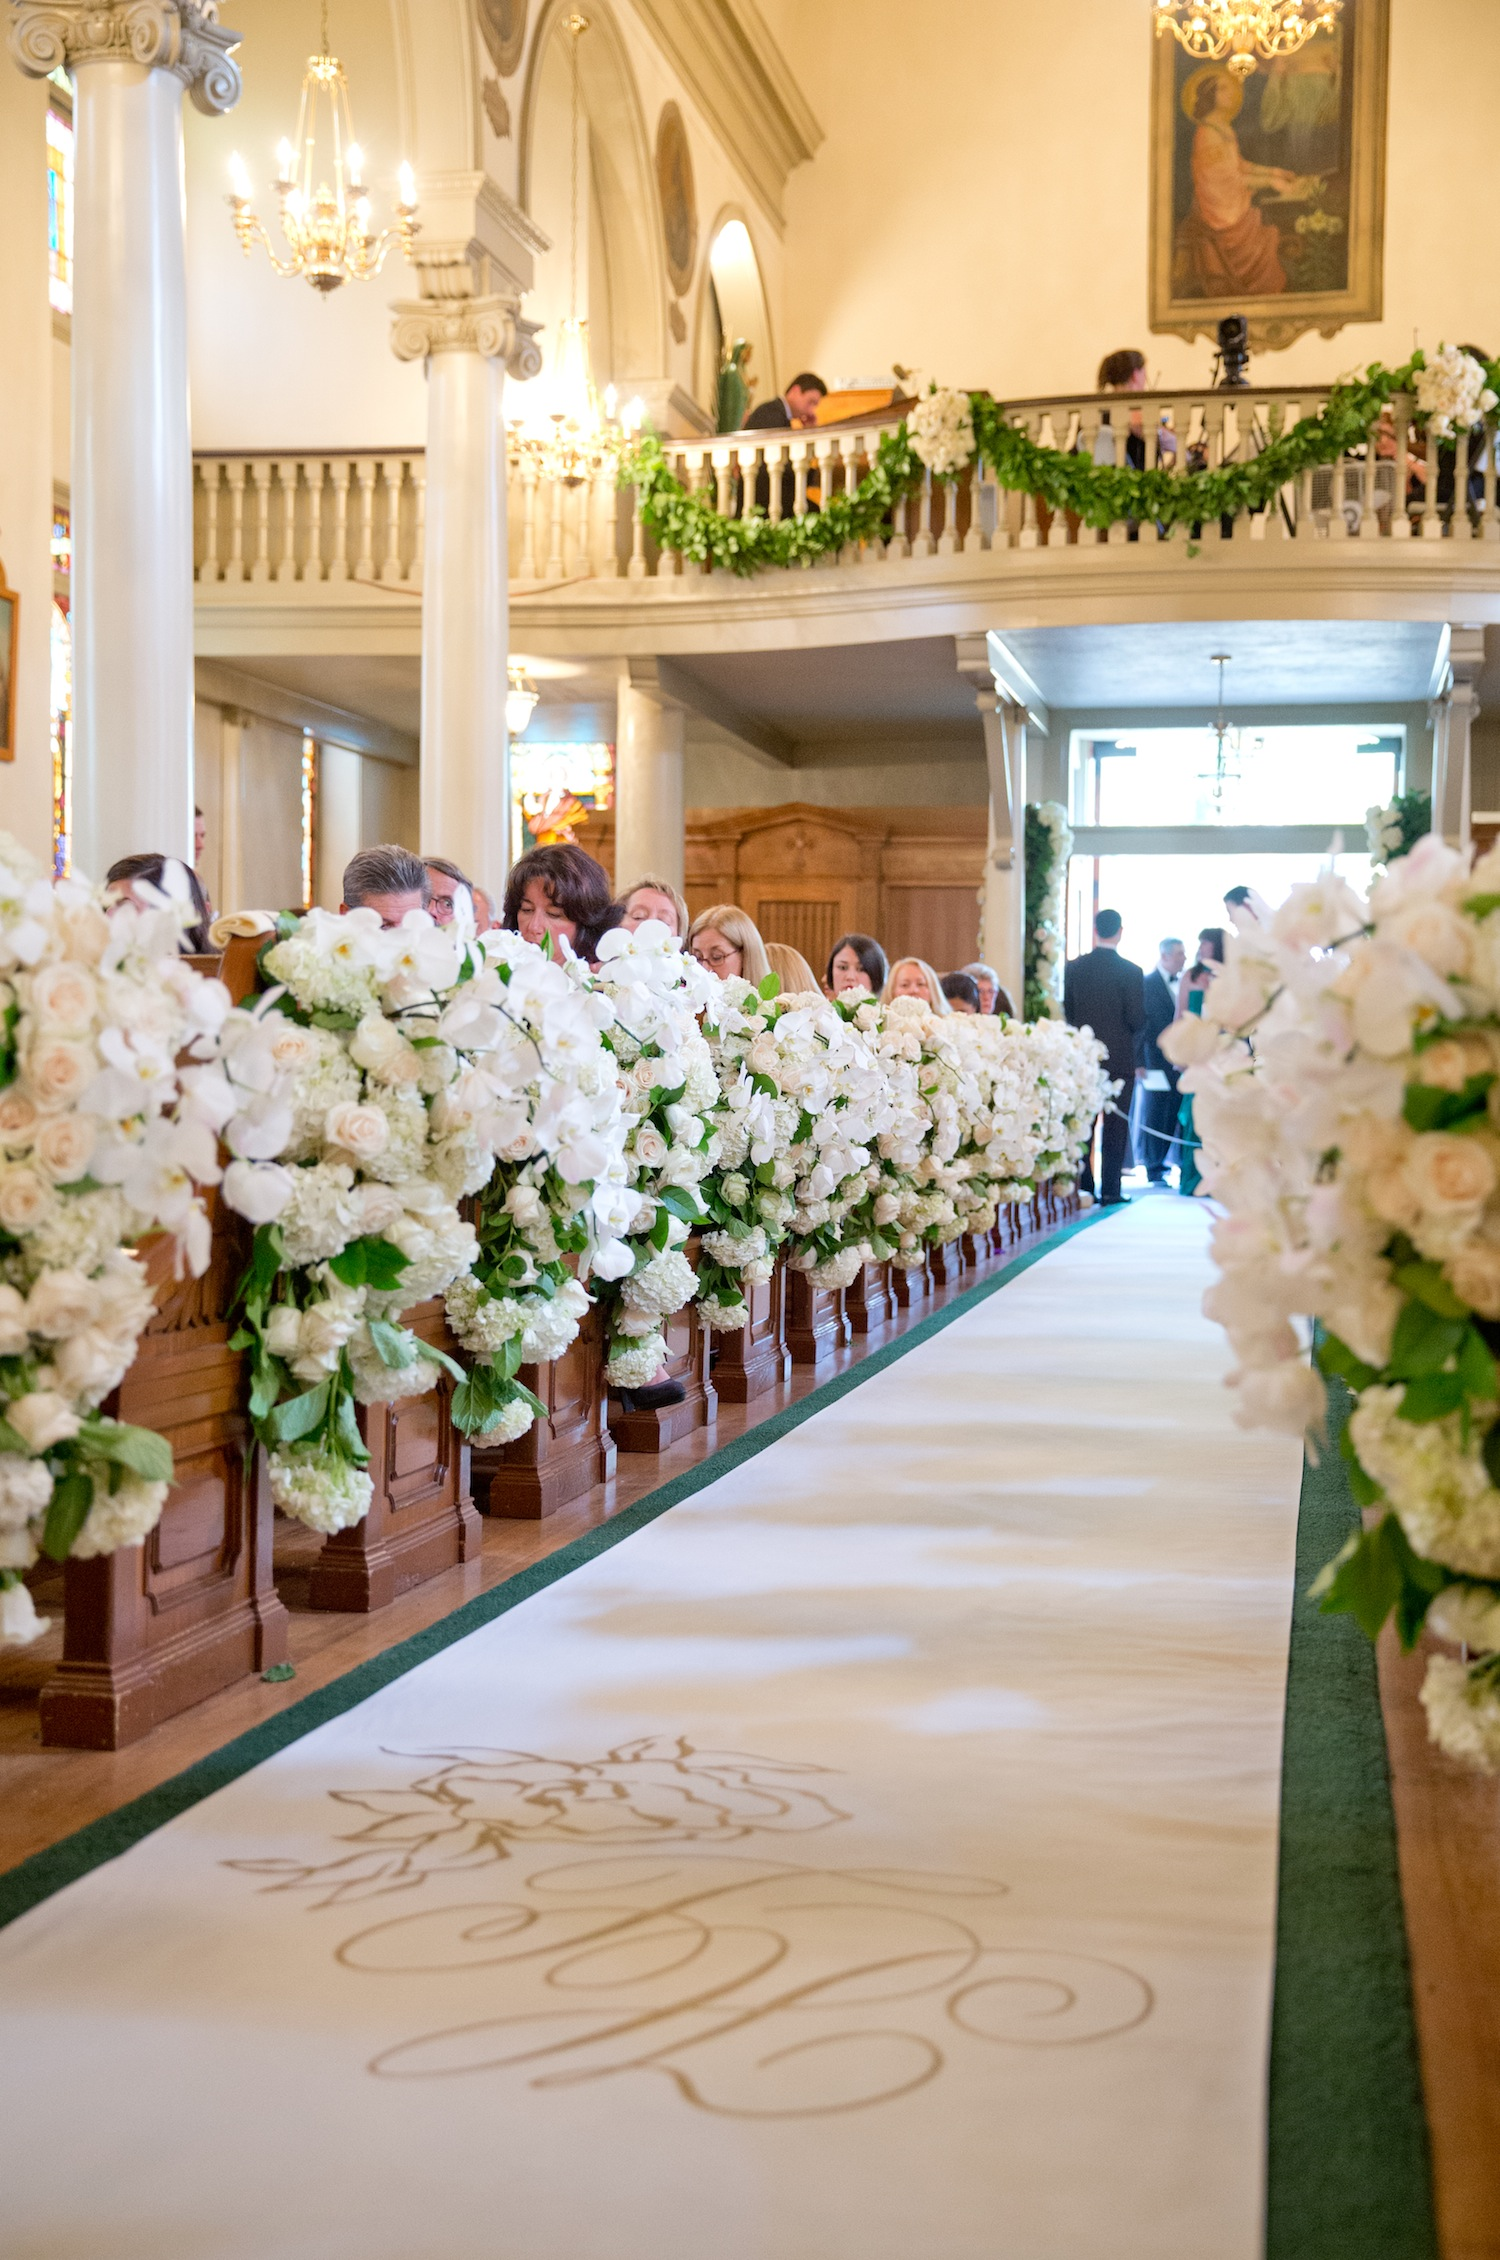 Custom aisle runner and flowers at church wedding : flower wedding decoration ideas - www.pureclipart.com